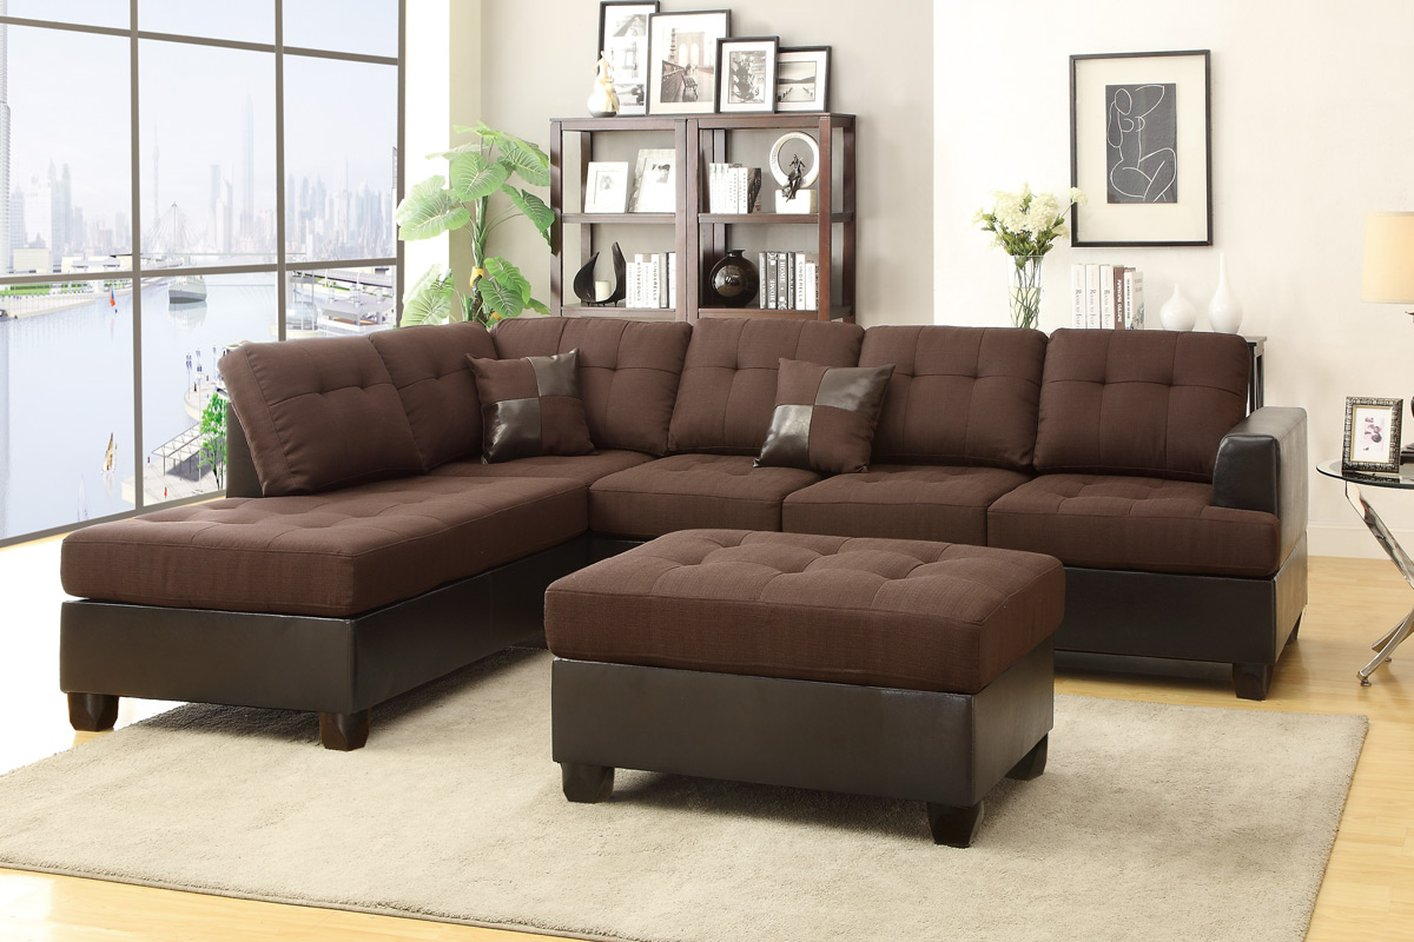 Poundex Moss F7602 Brown Fabric Sectional Sofa And Ottoman In Los Angeles Sectional Sofas (View 6 of 15)